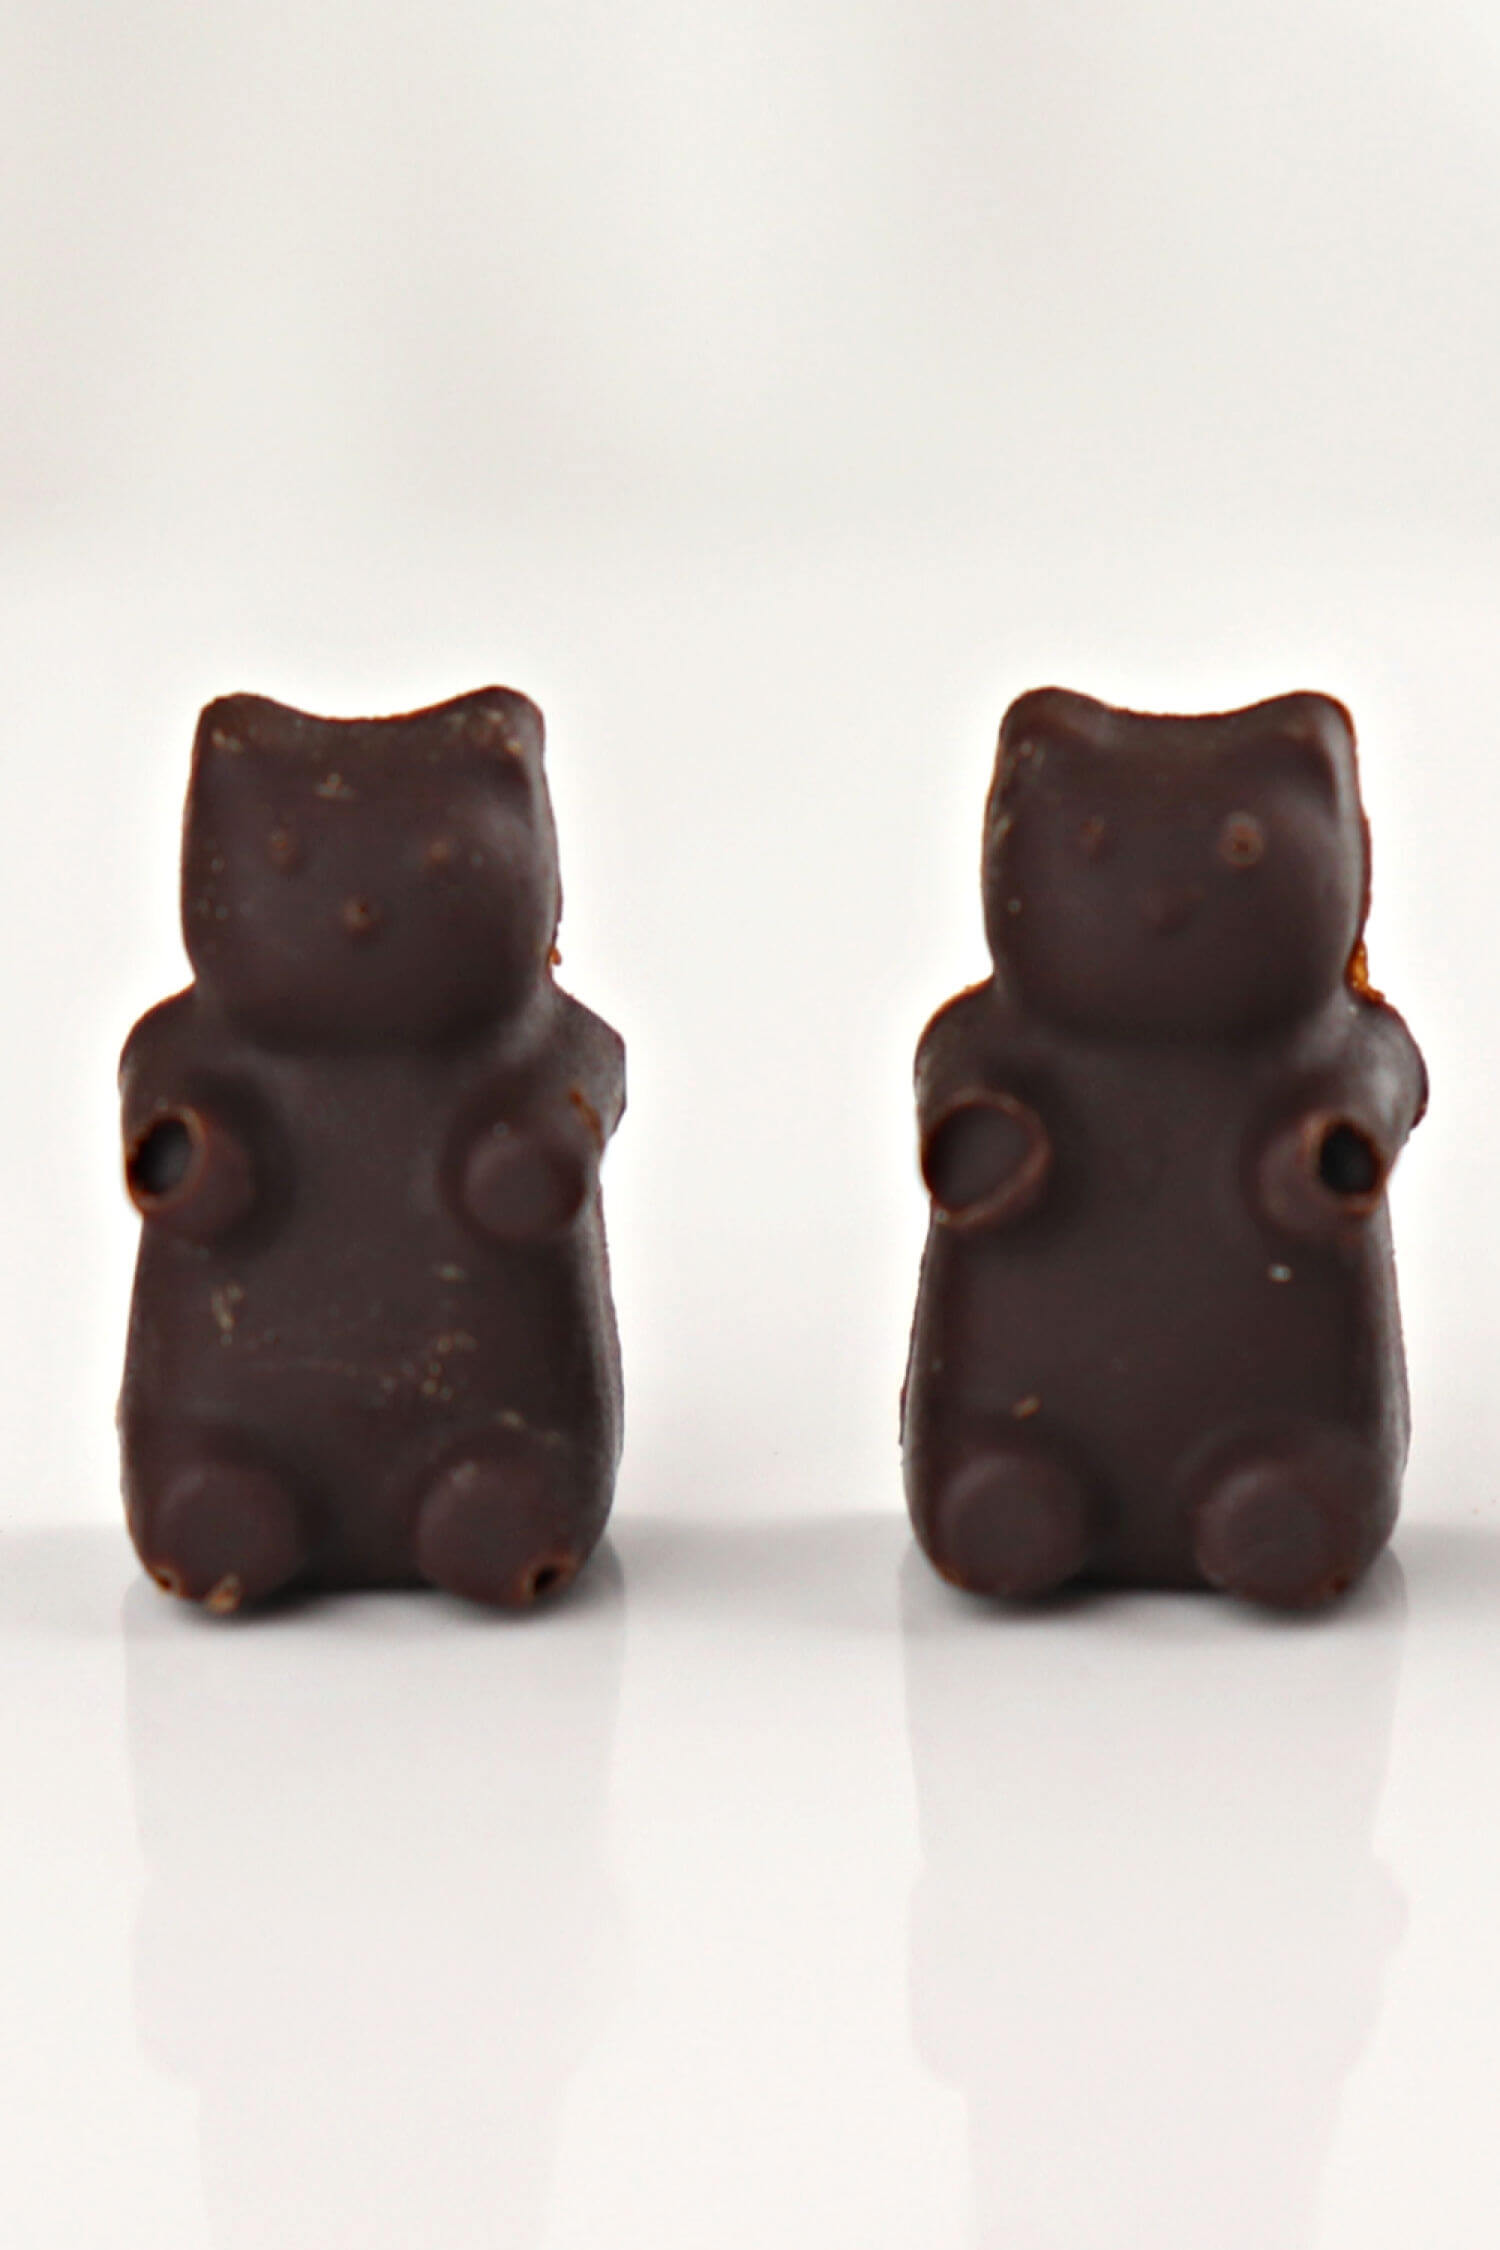 Two keto chocolate bears #ketochocolate #chocolatecraving #lowcarbchocolate